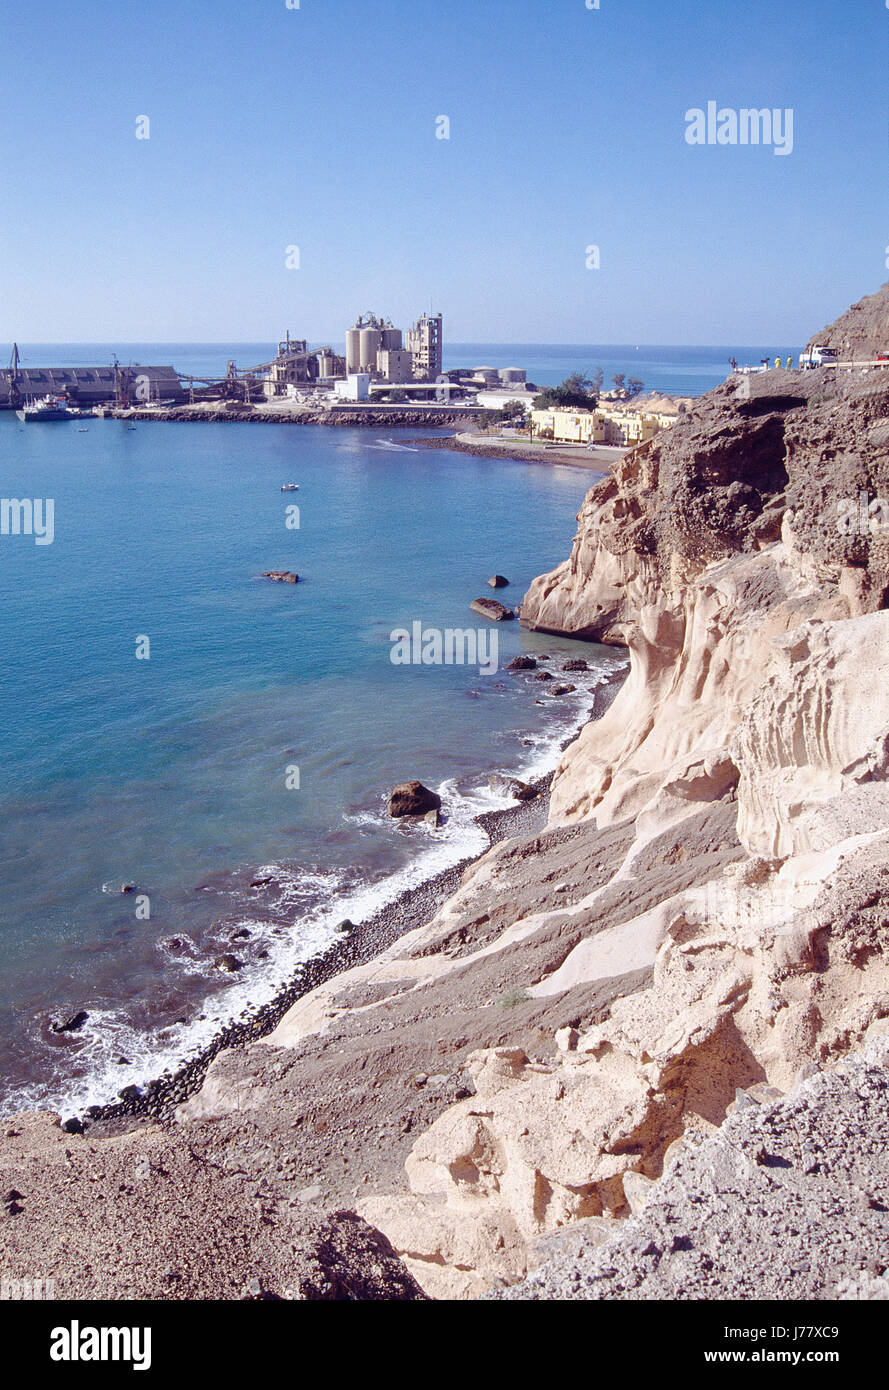 Cement factory. Pasito Blanco, Gran Canaria island, Canary Islands, Spain. - Stock Image